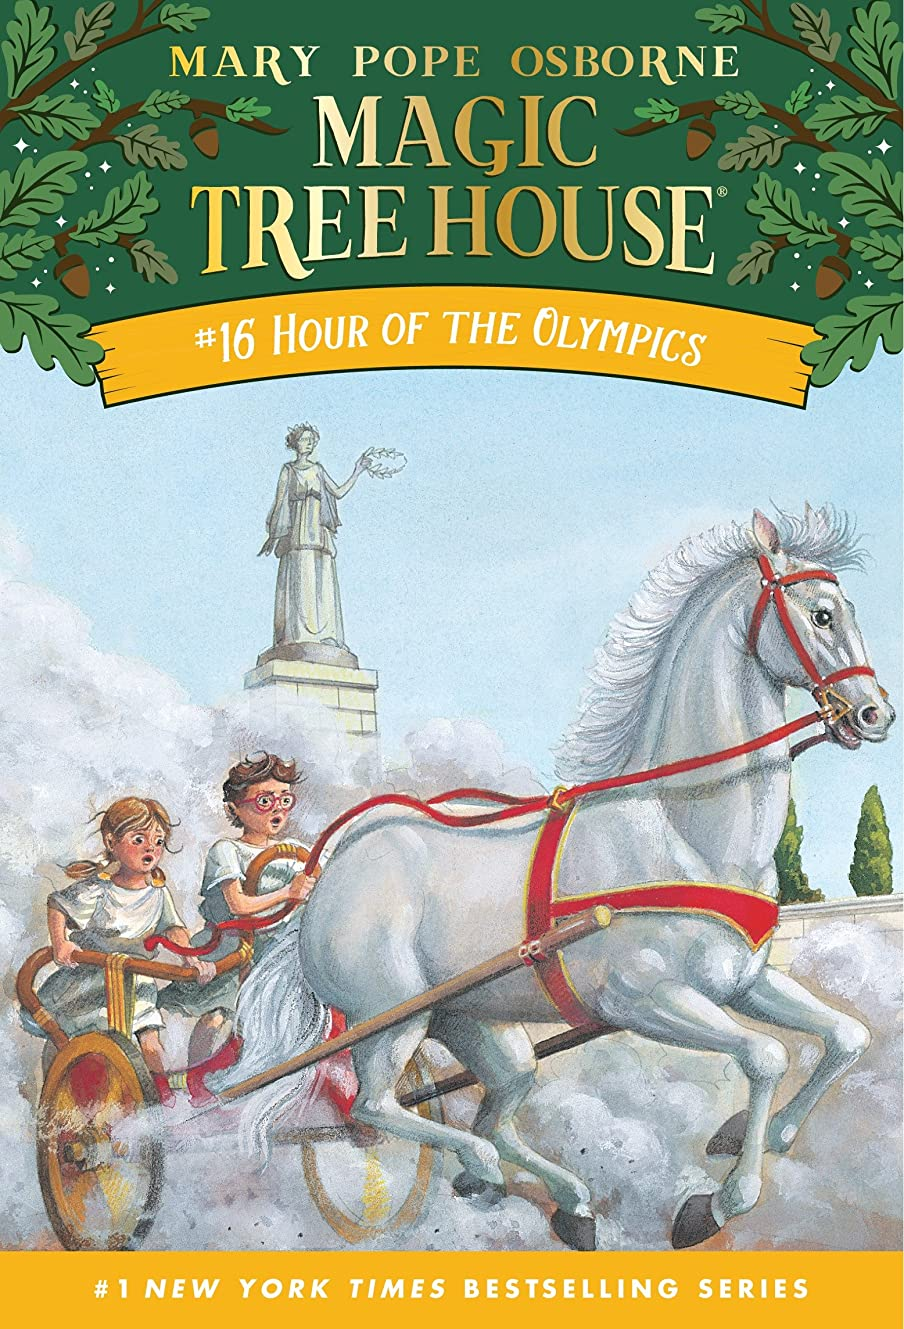 Hour of the Olympics (Magic Tree House Book 16) (English Edition)